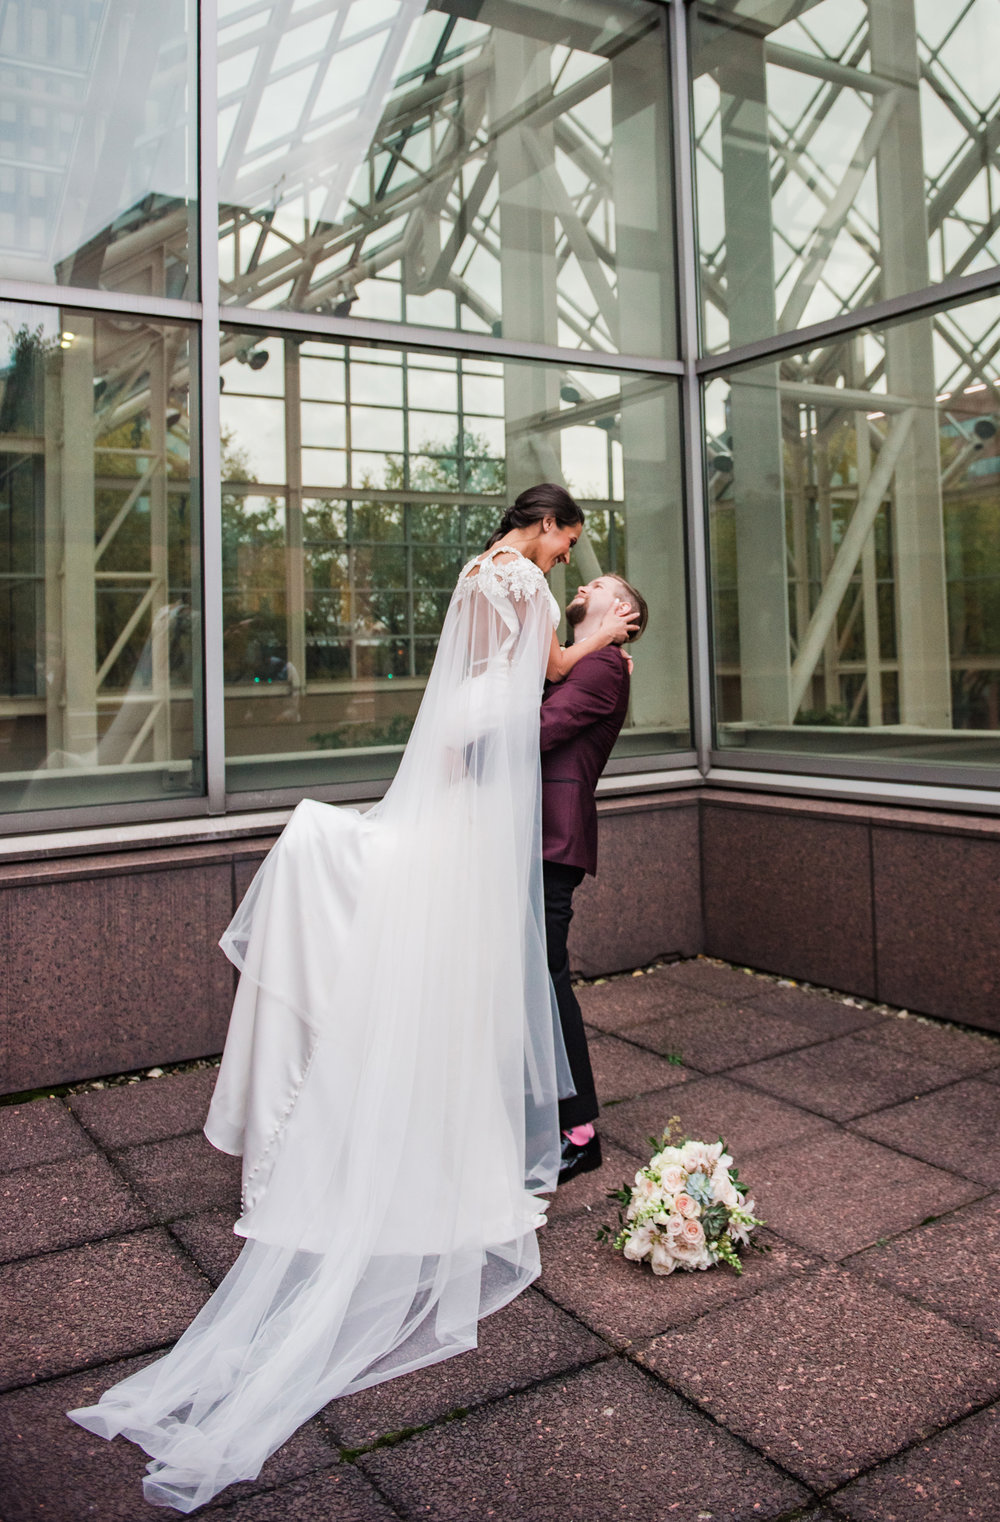 Wintergarden_by_Monroes_Rochester_Wedding_JILL_STUDIO_Rochester_NY_Photographer_174804.jpg